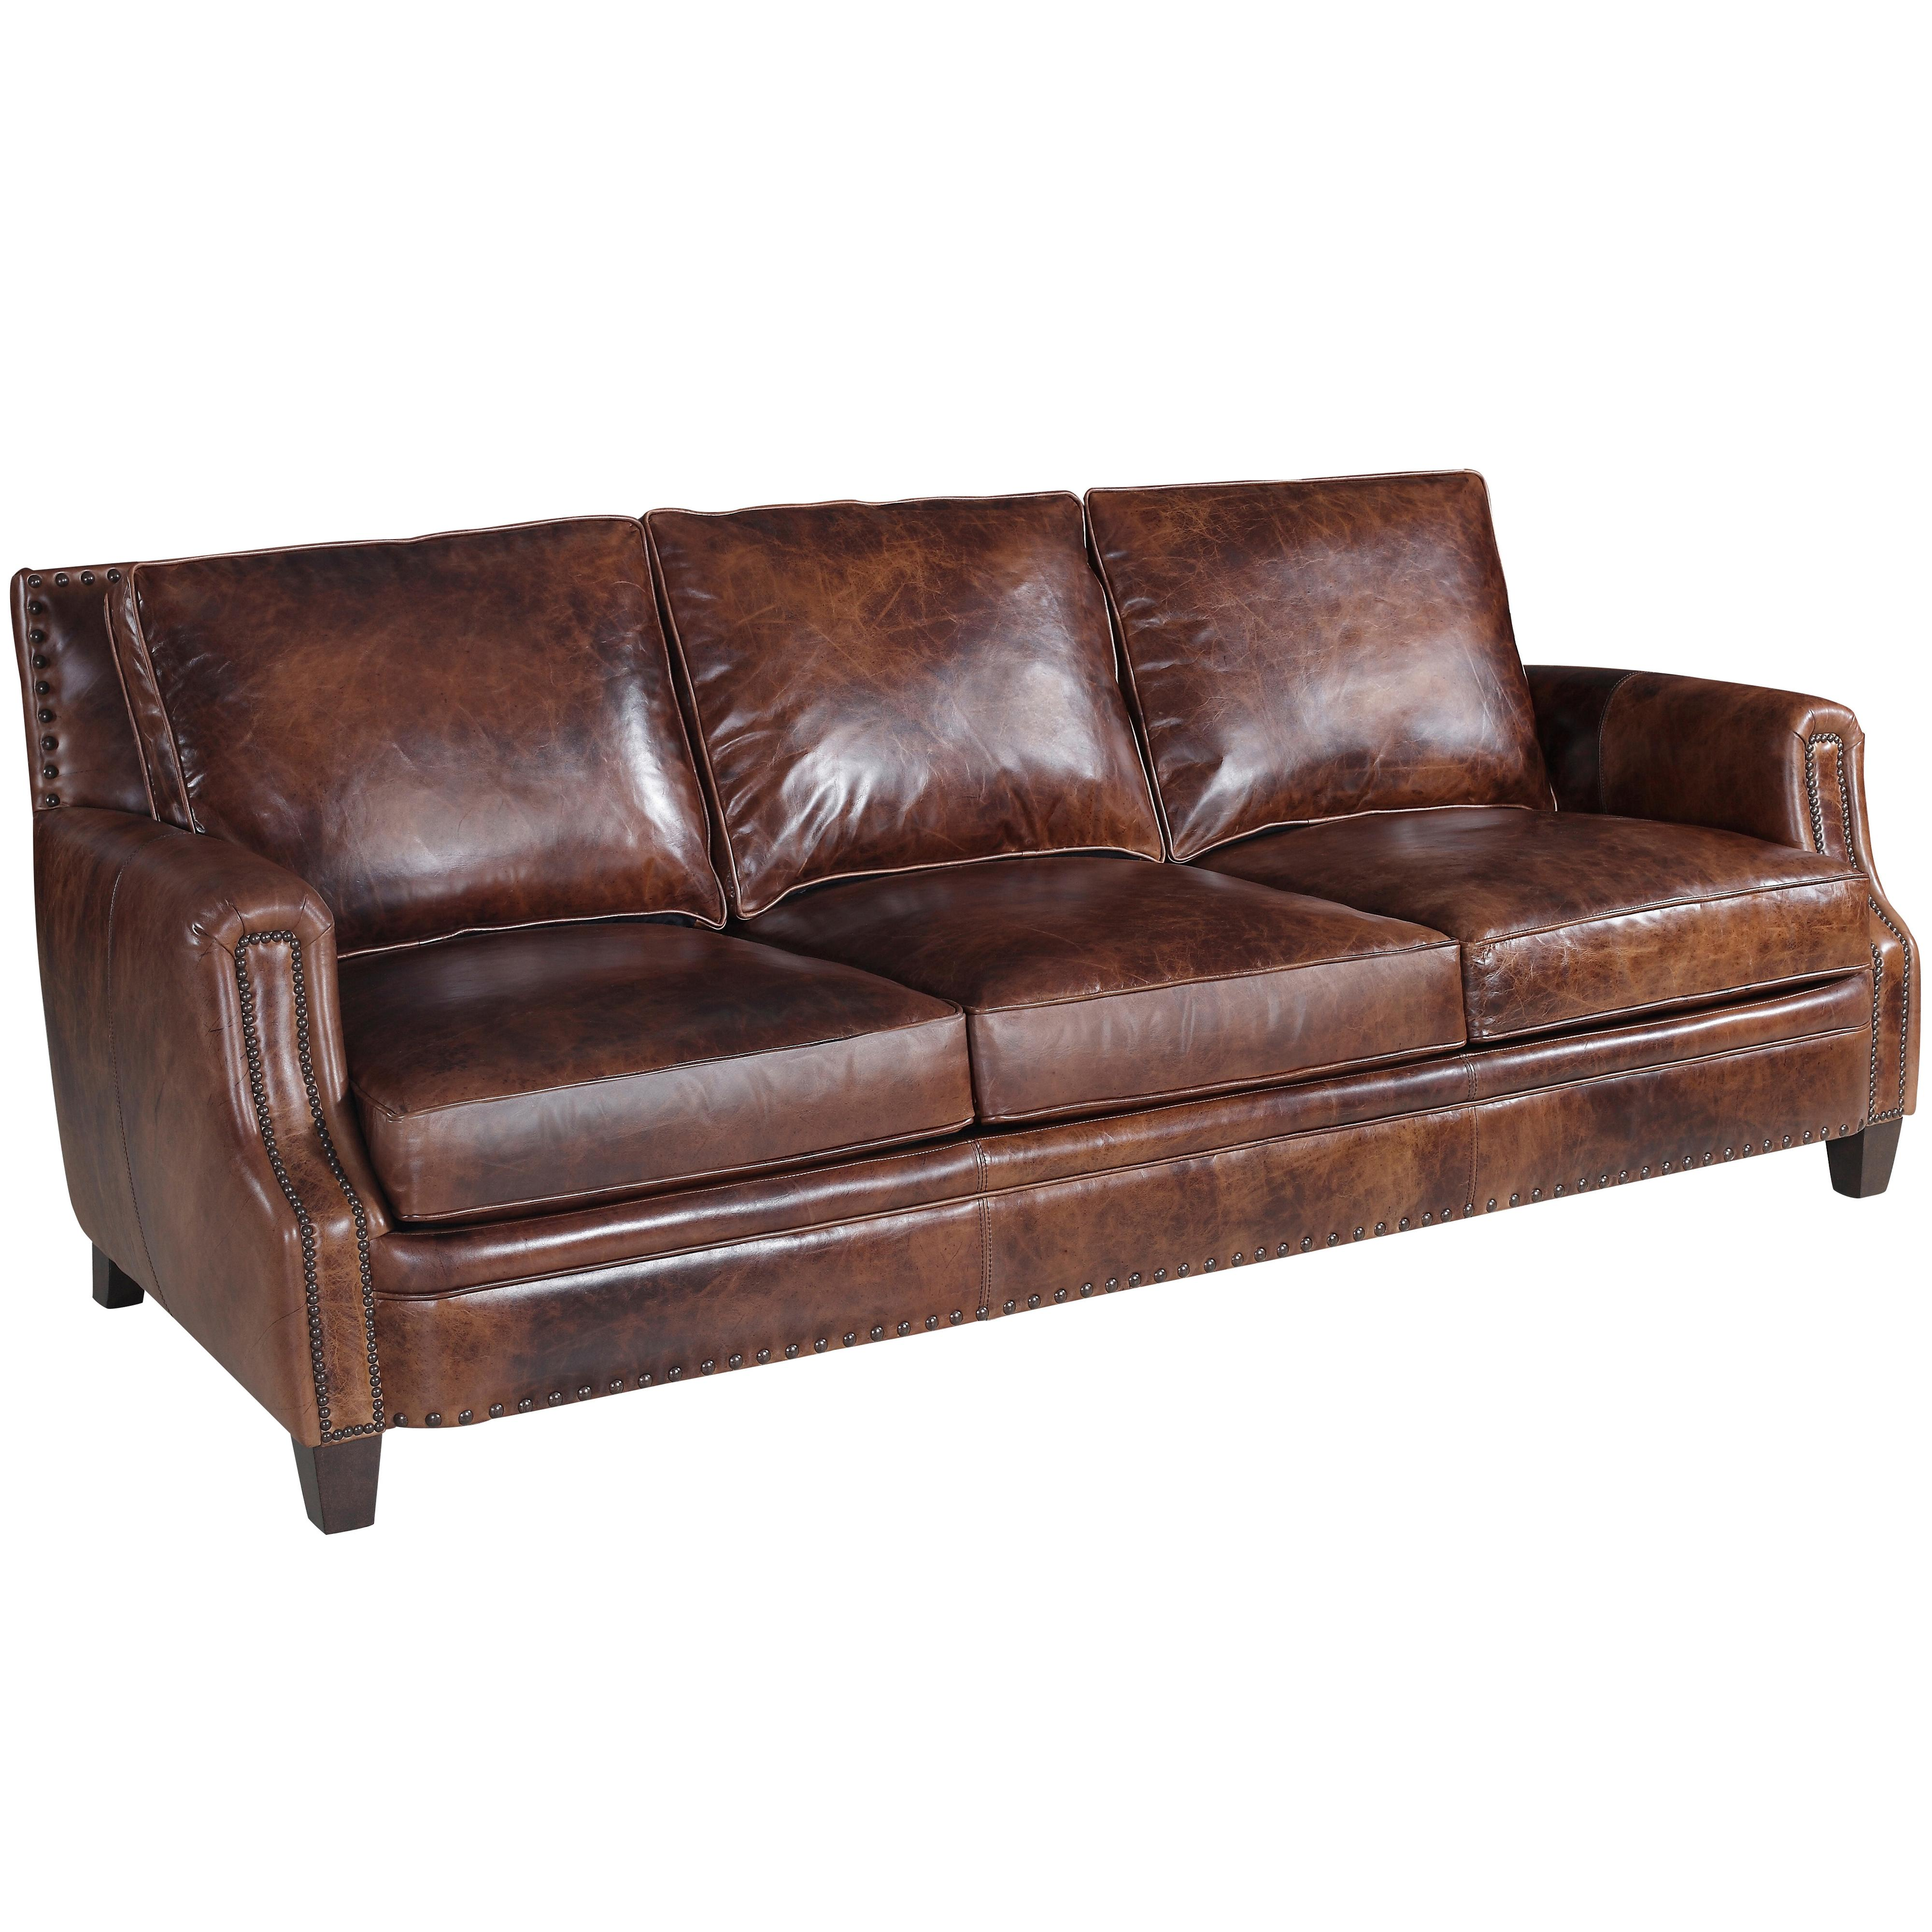 Hooker Furniture SS311 Traditional Sofa - Item Number: SS311-03-085